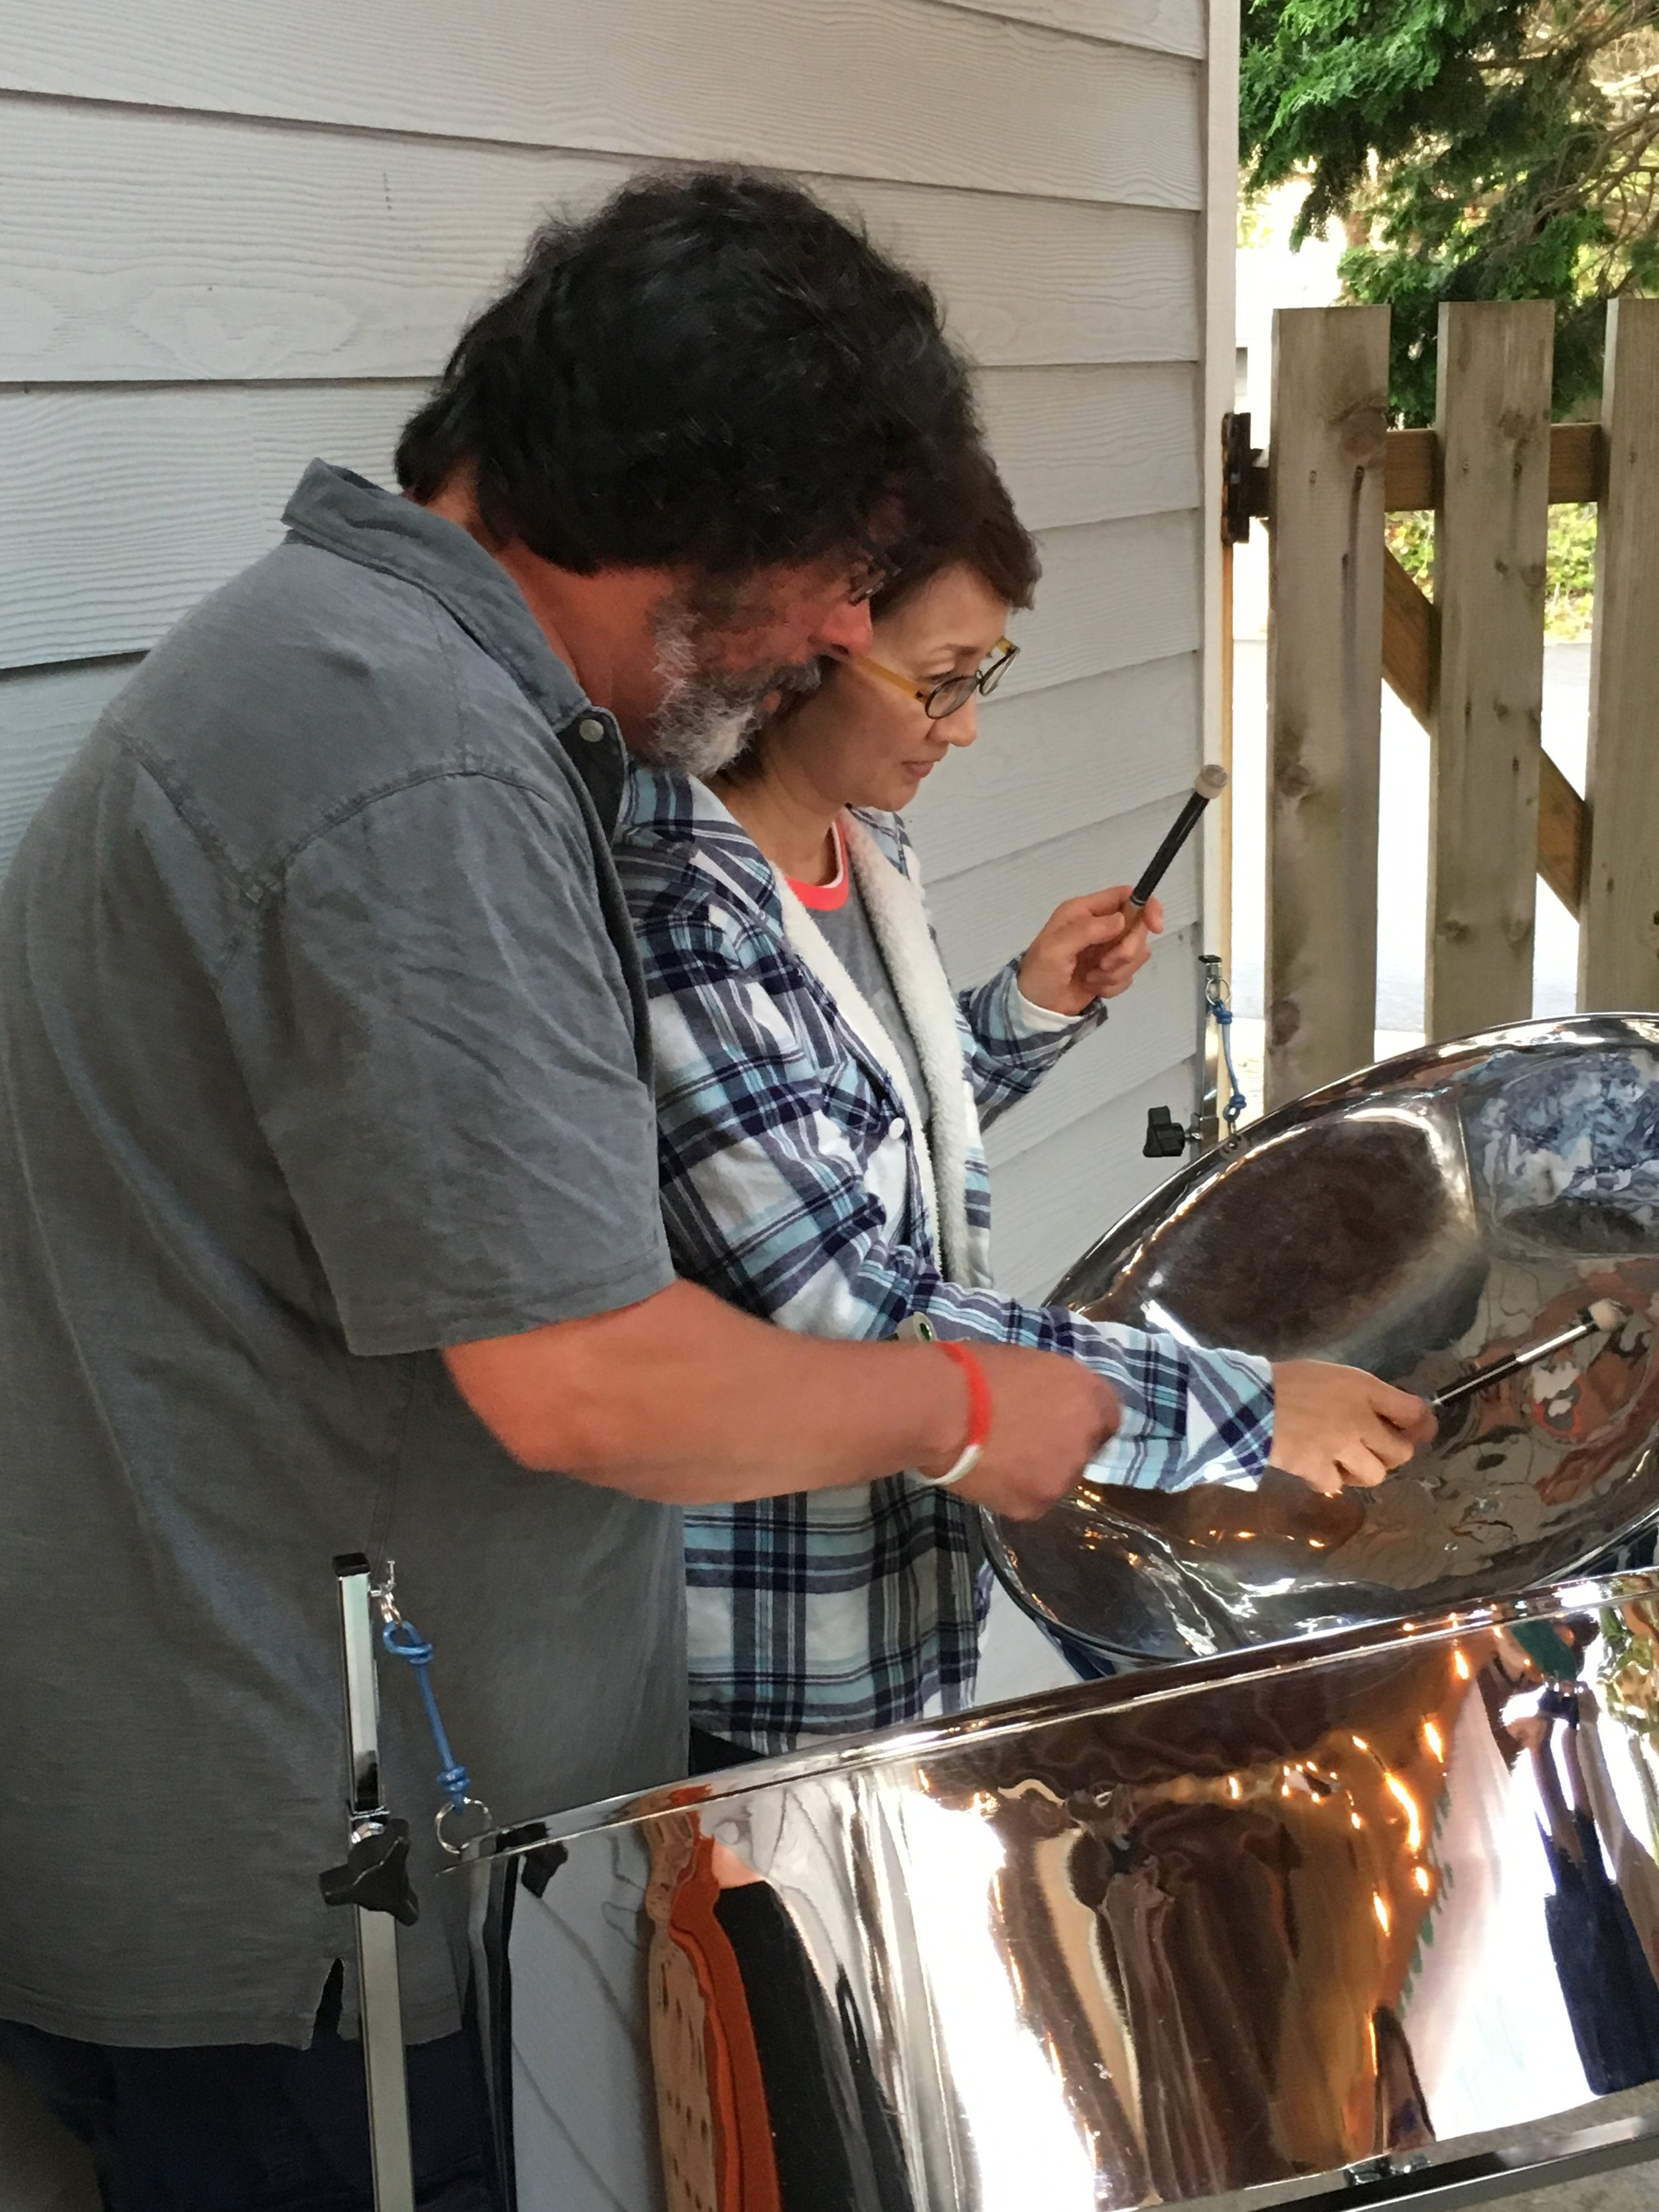 I can play solo steel pans for your event. I also perform with high quality background tracks using the sound of real studio musicians.